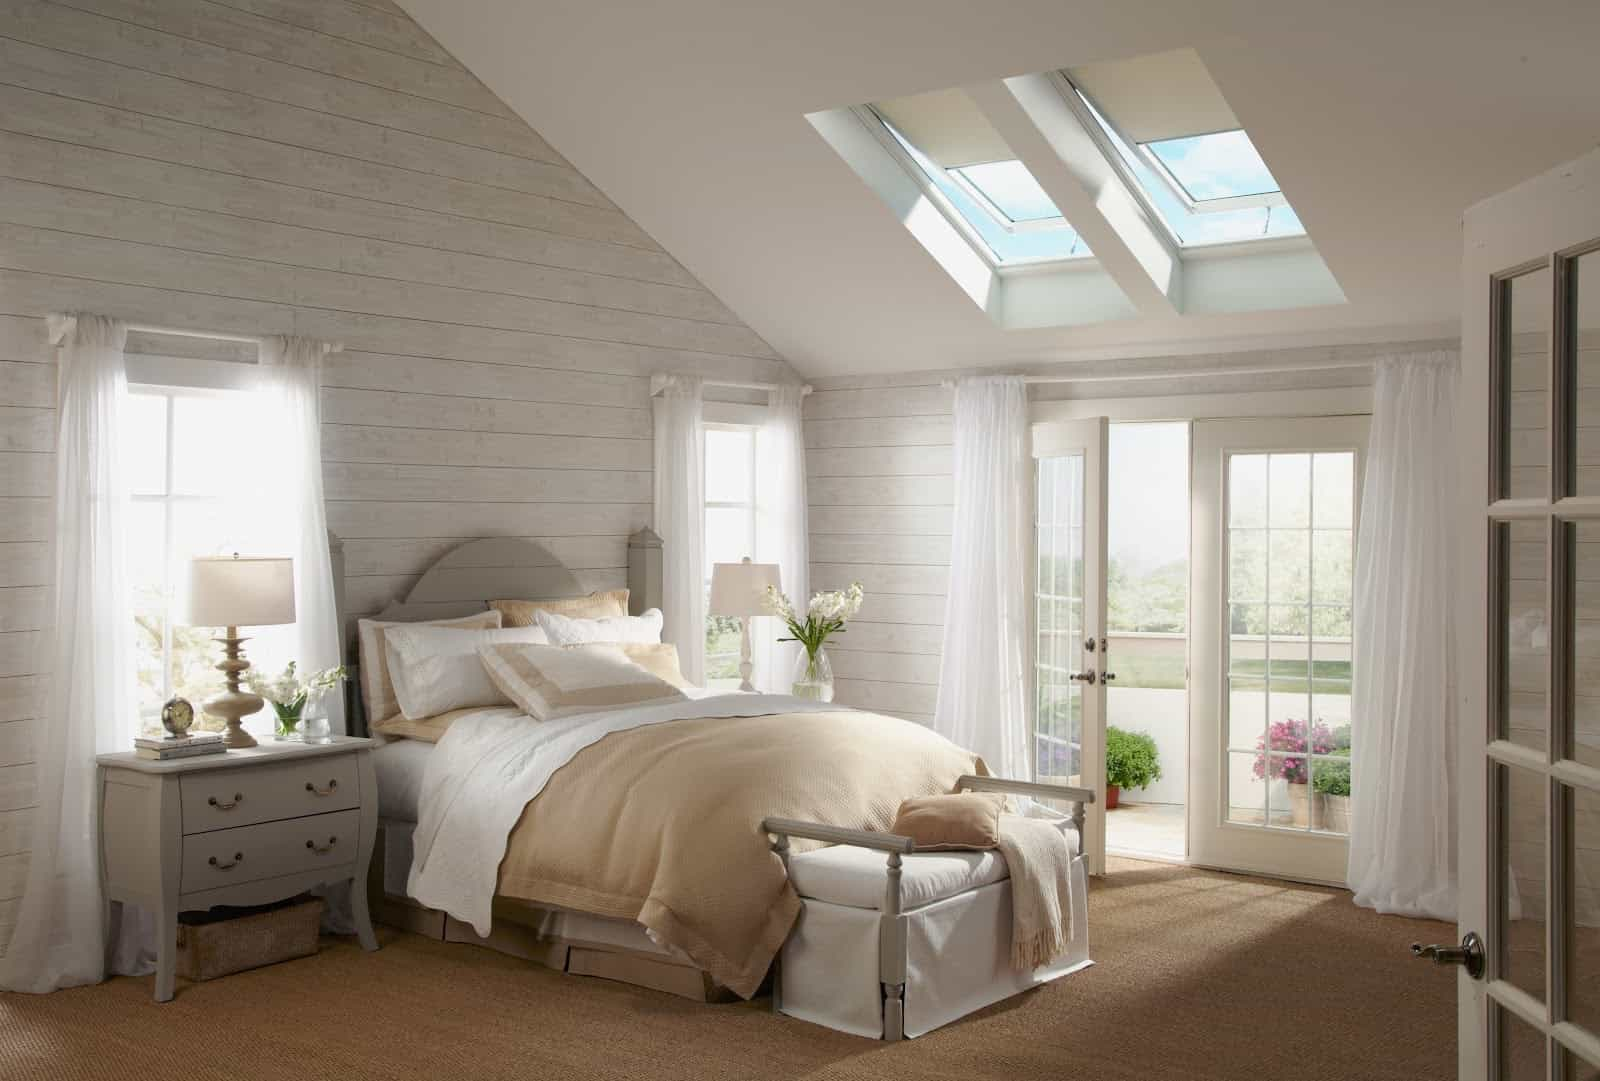 Vertical Skylight And Rooflight Blinds For Elegant Bedroom Interior (Image 25 of 25)